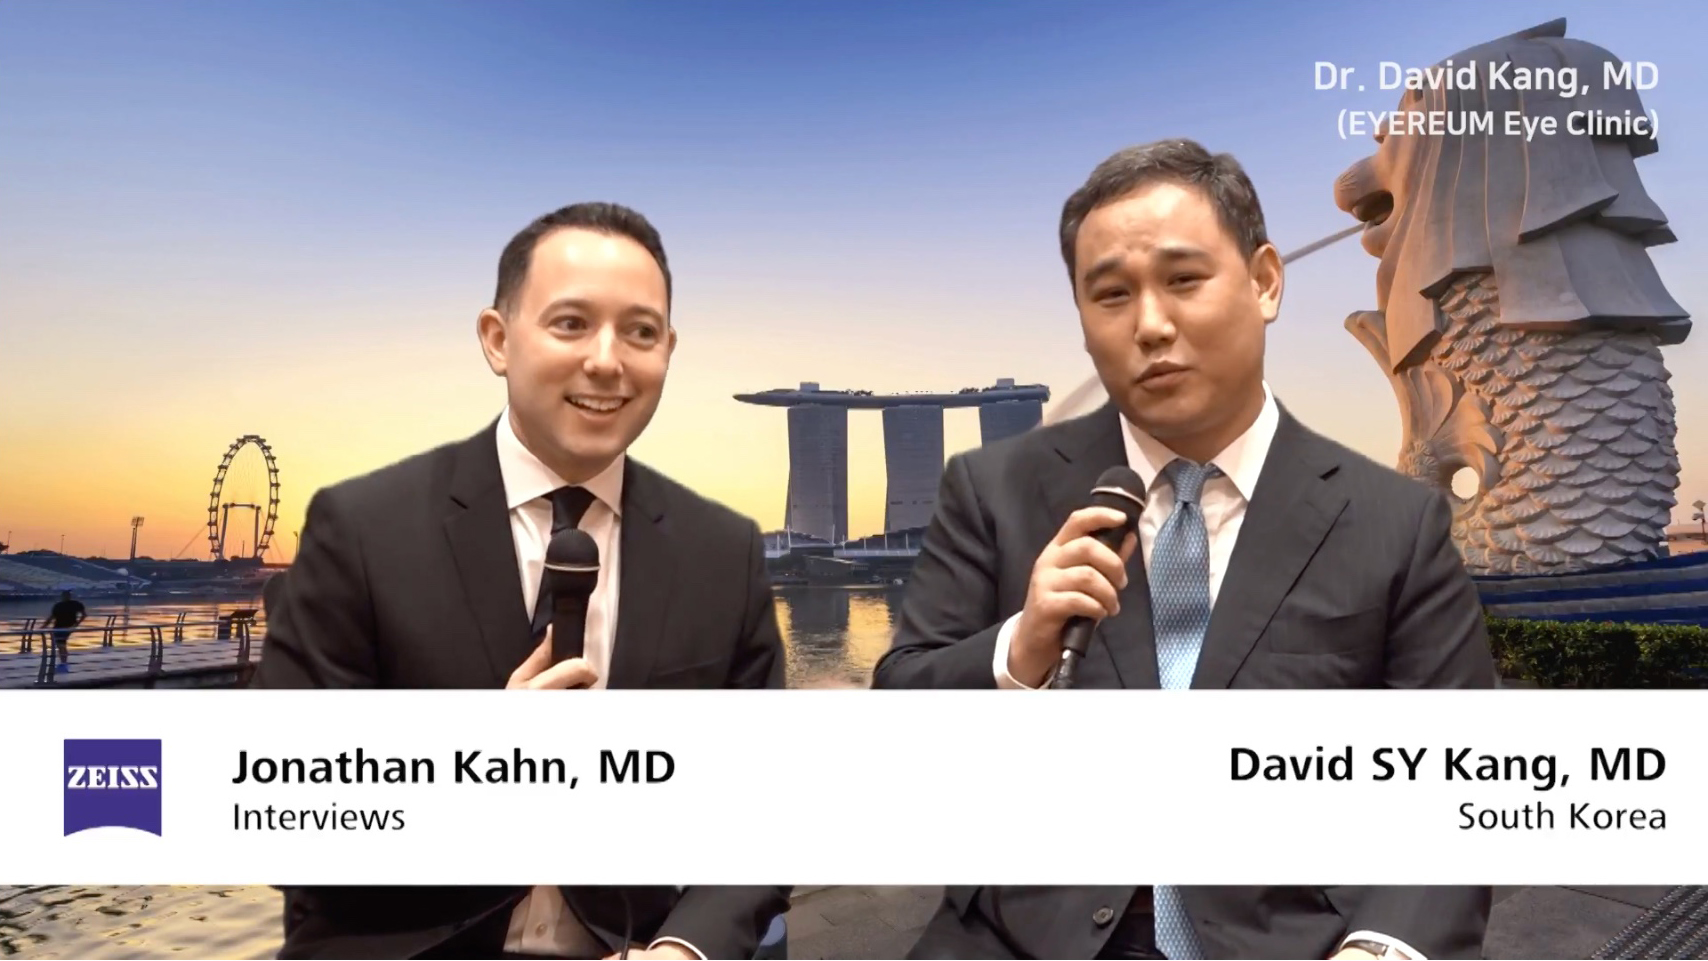 [2017 ZEISS] Dr. David Kang, MD - SMILE